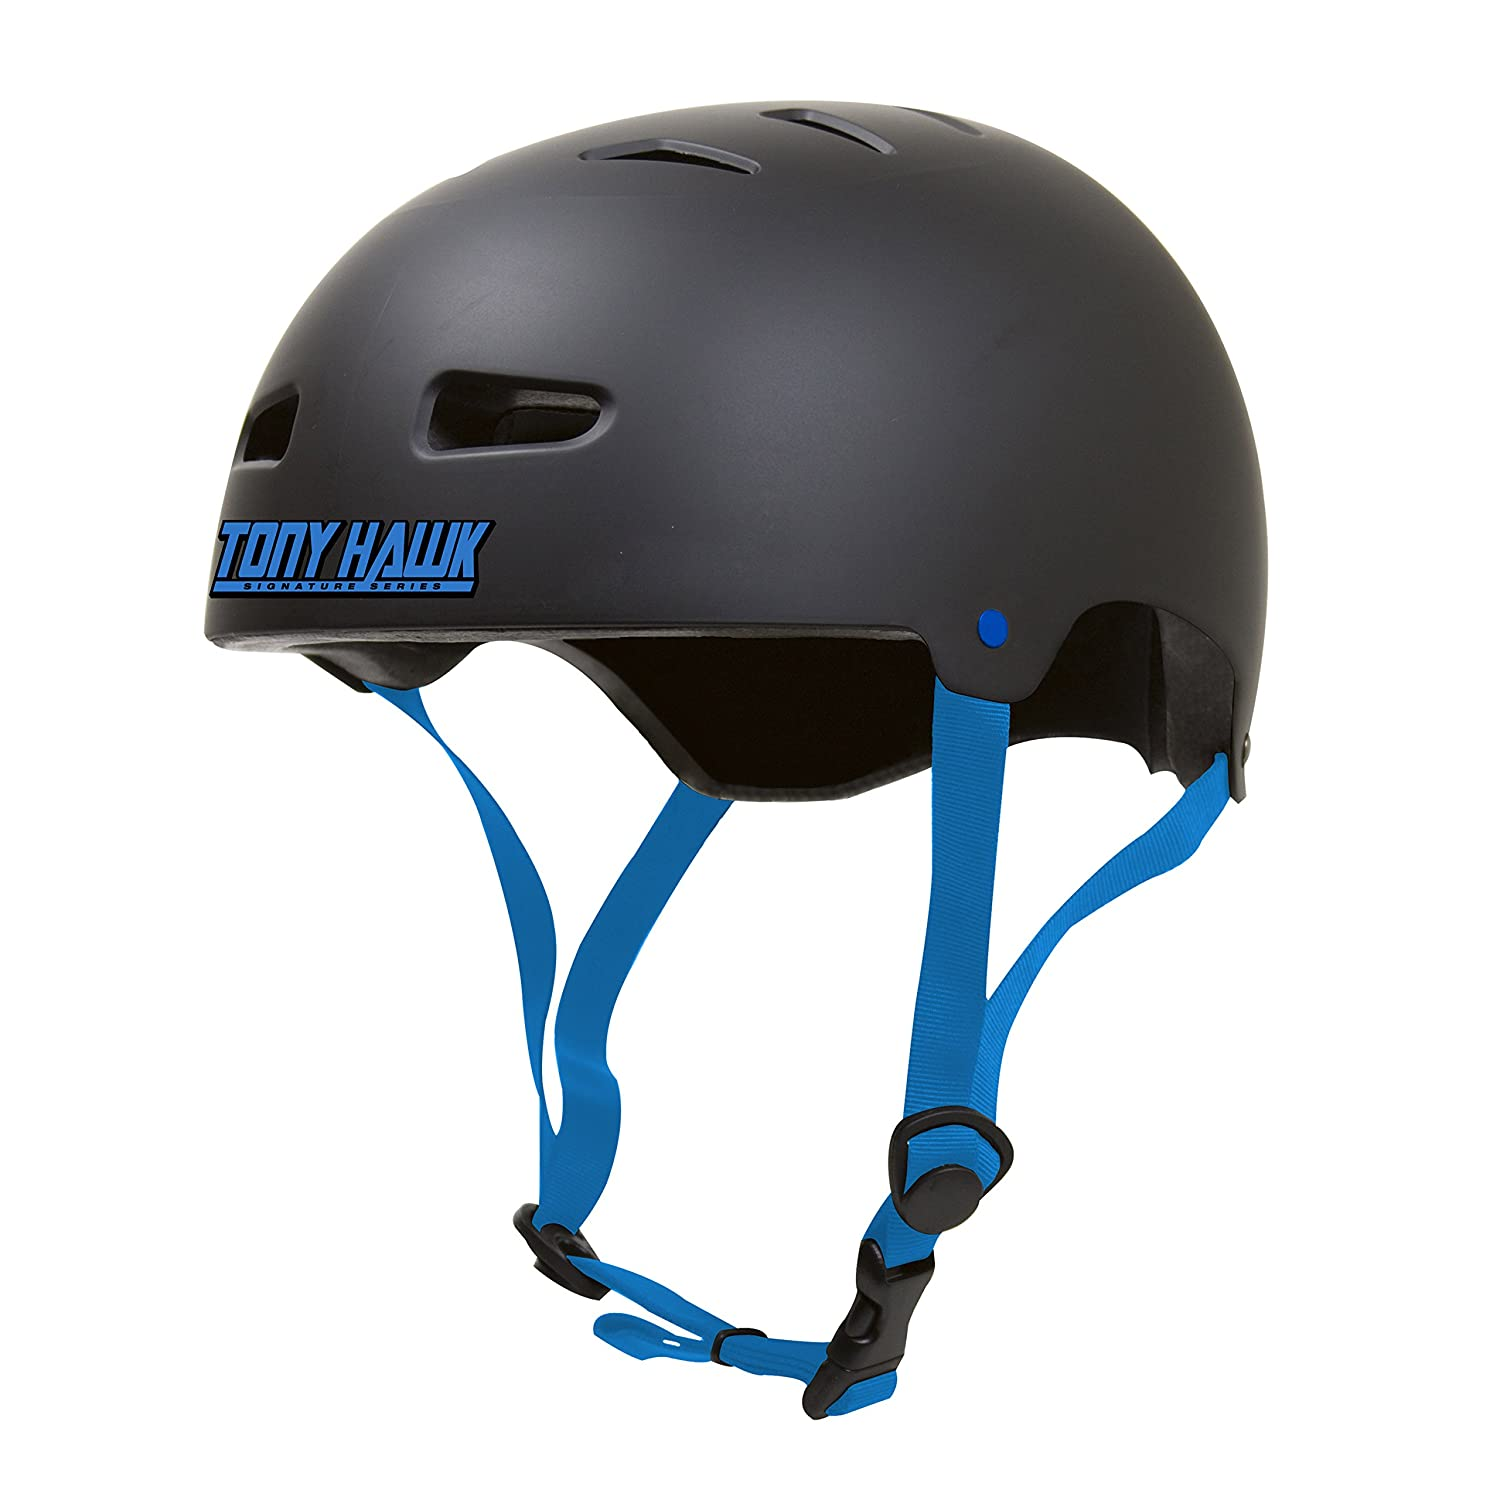 Tony Hawk Helmet Sports Outdoors